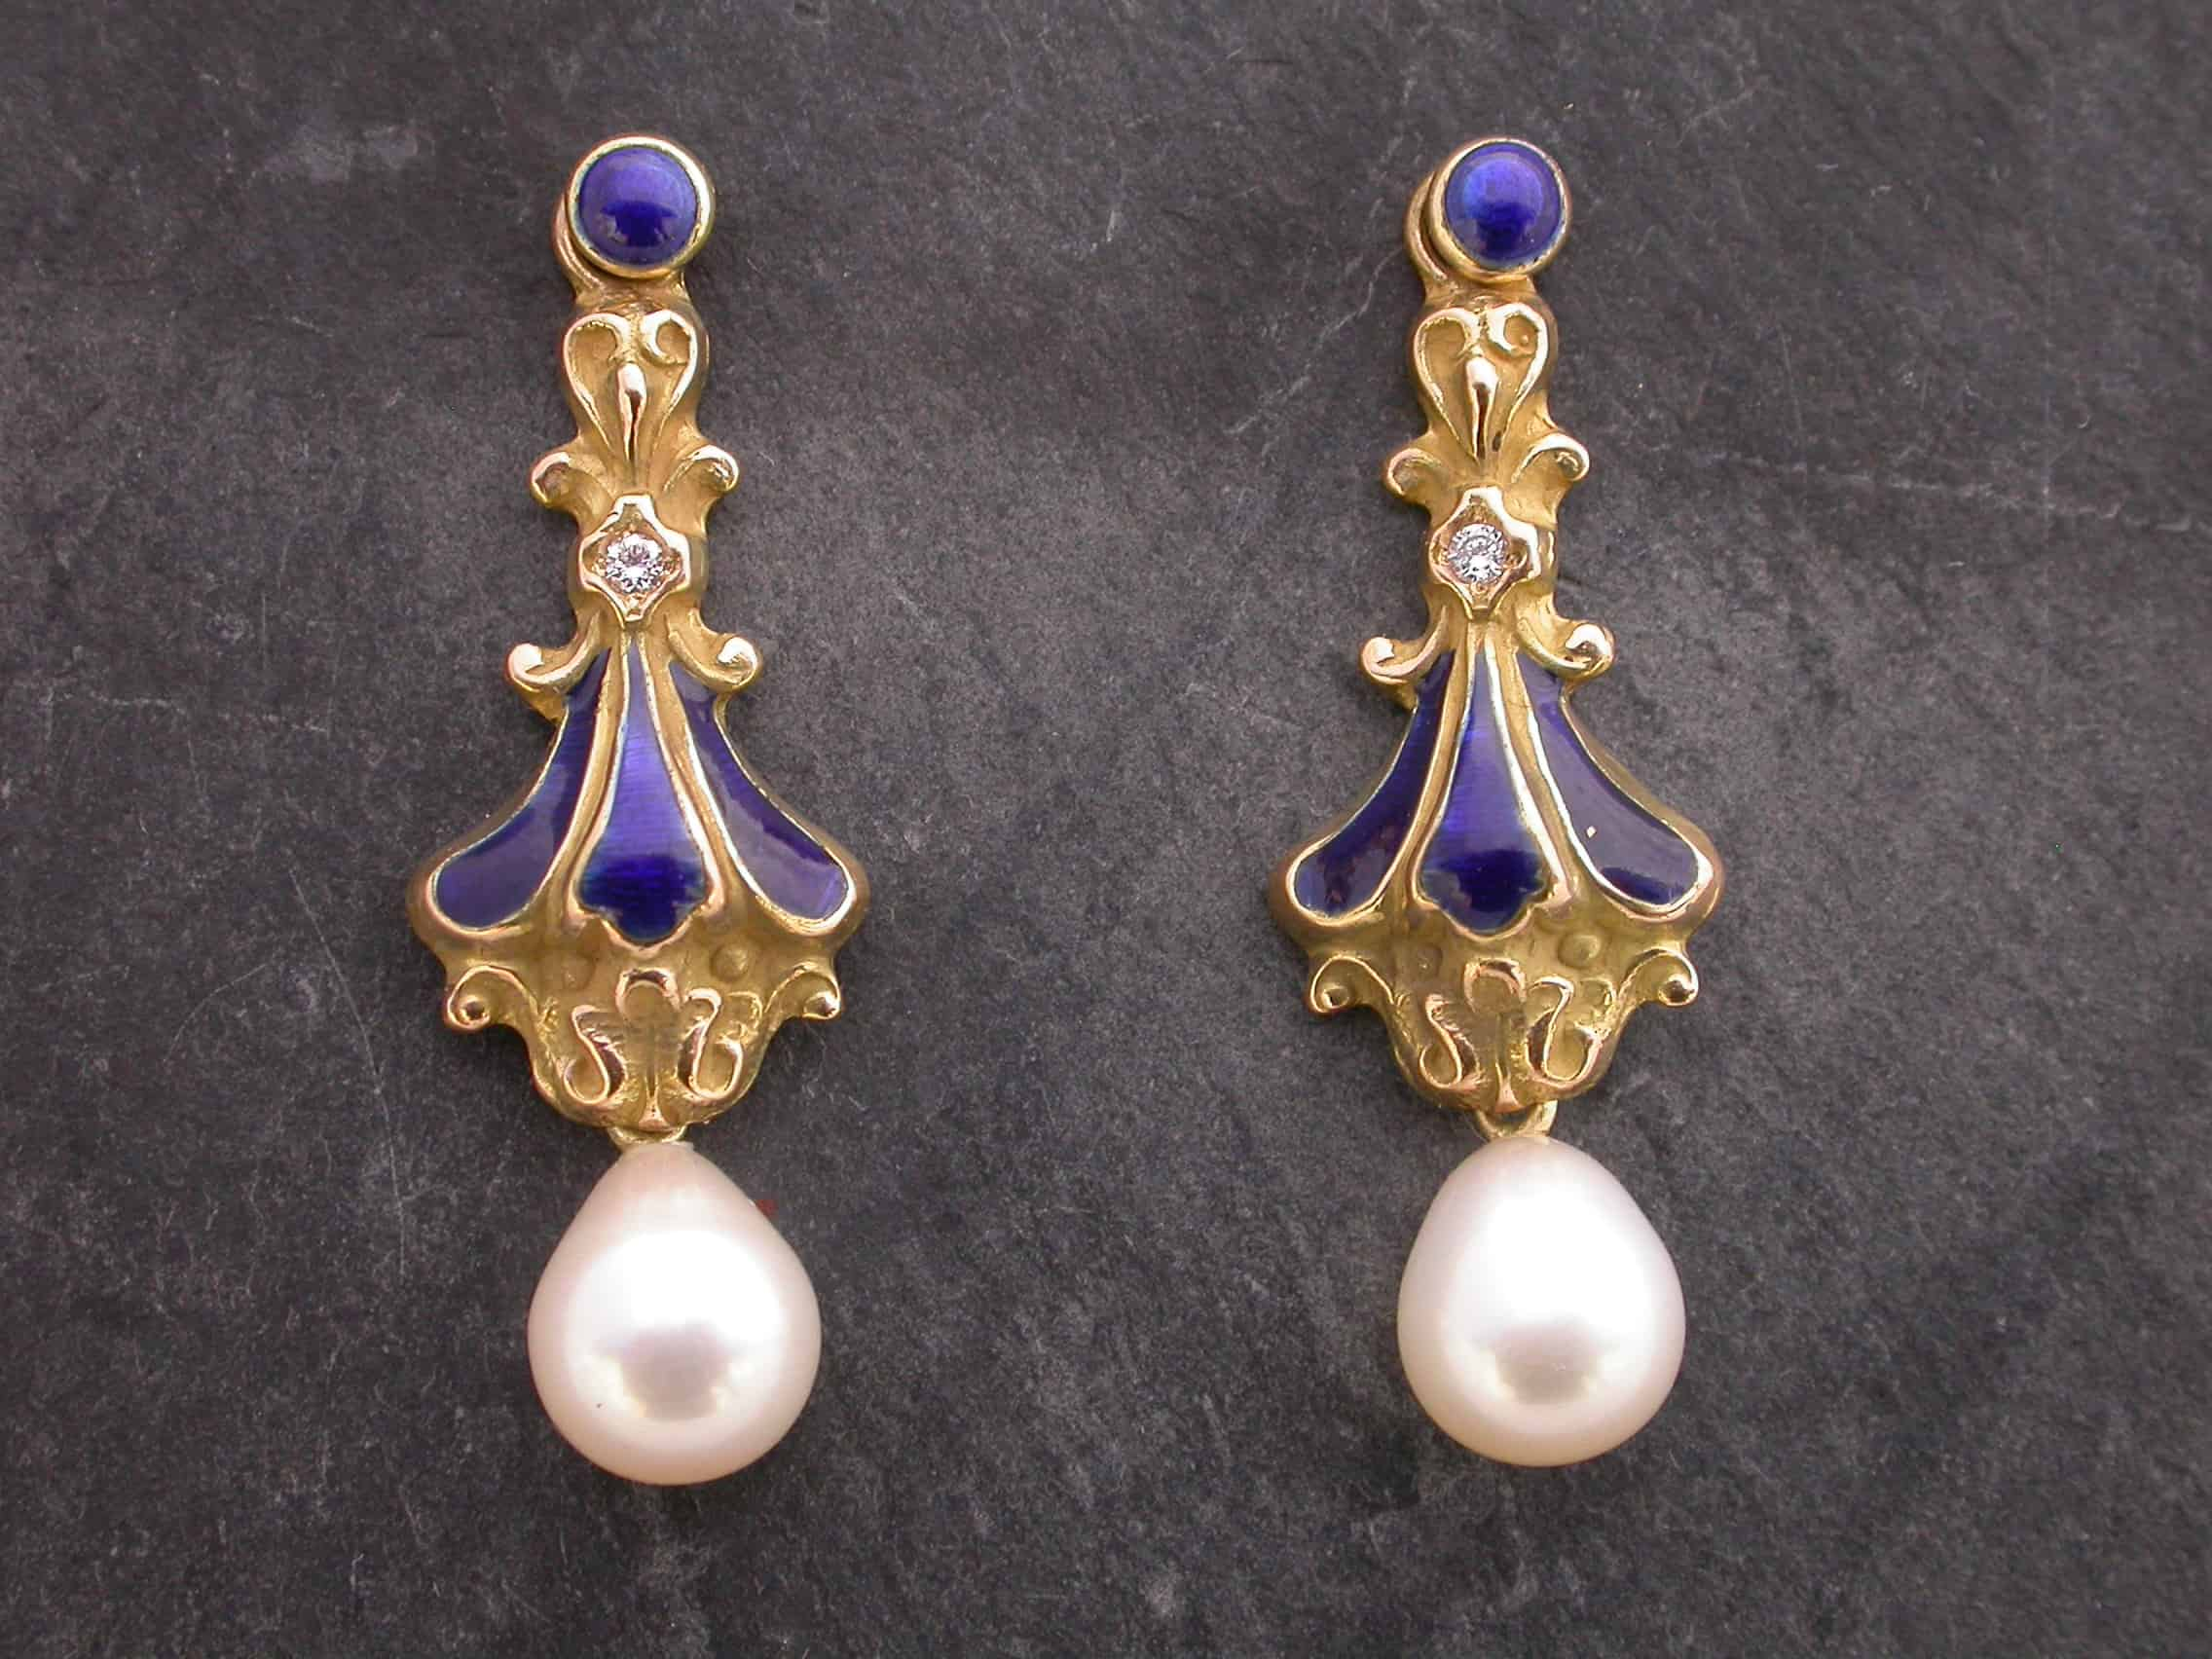 Unique earrings, pearls, diamonds, 18ct gold, enamelled